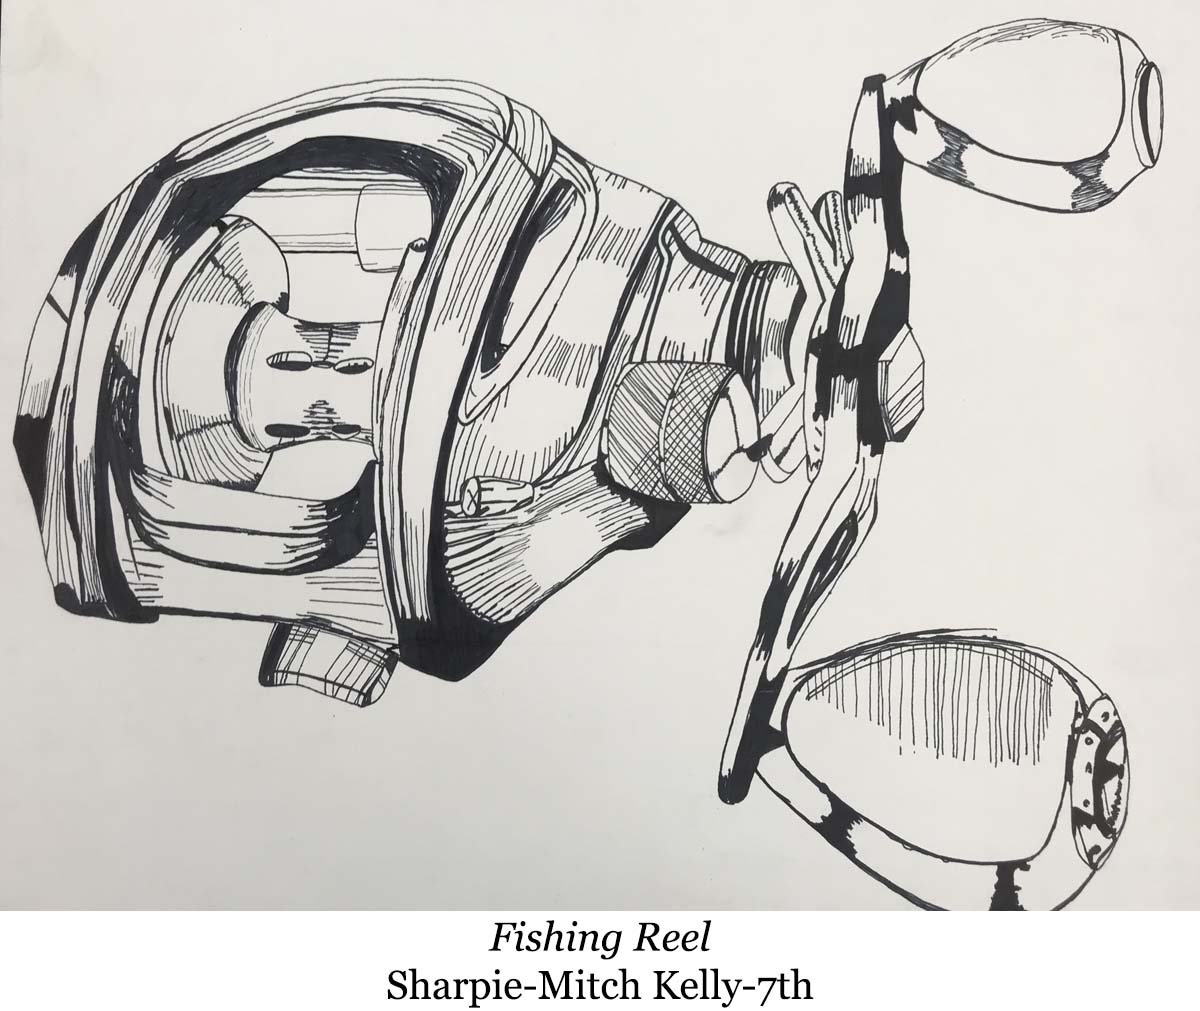 drawing of a fishing reel